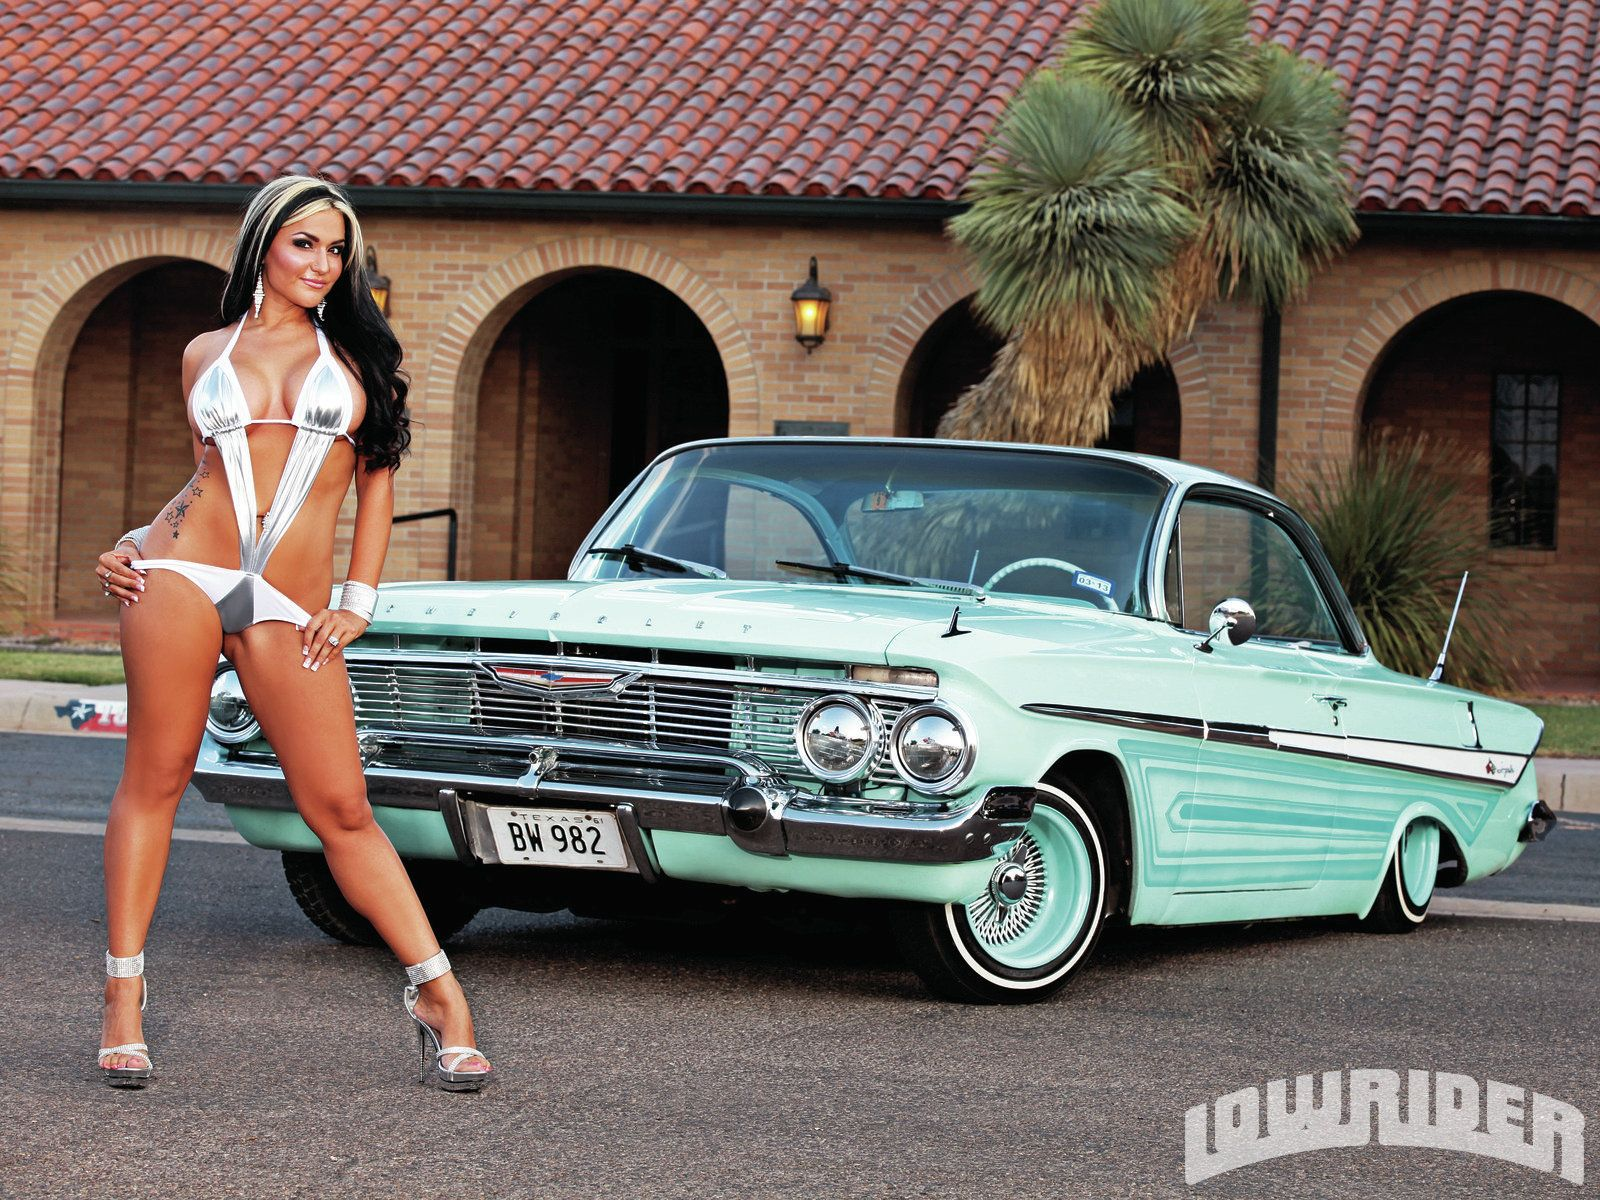 1961 Chevrolet Impala Terry Samaripa Photo 1 Cars